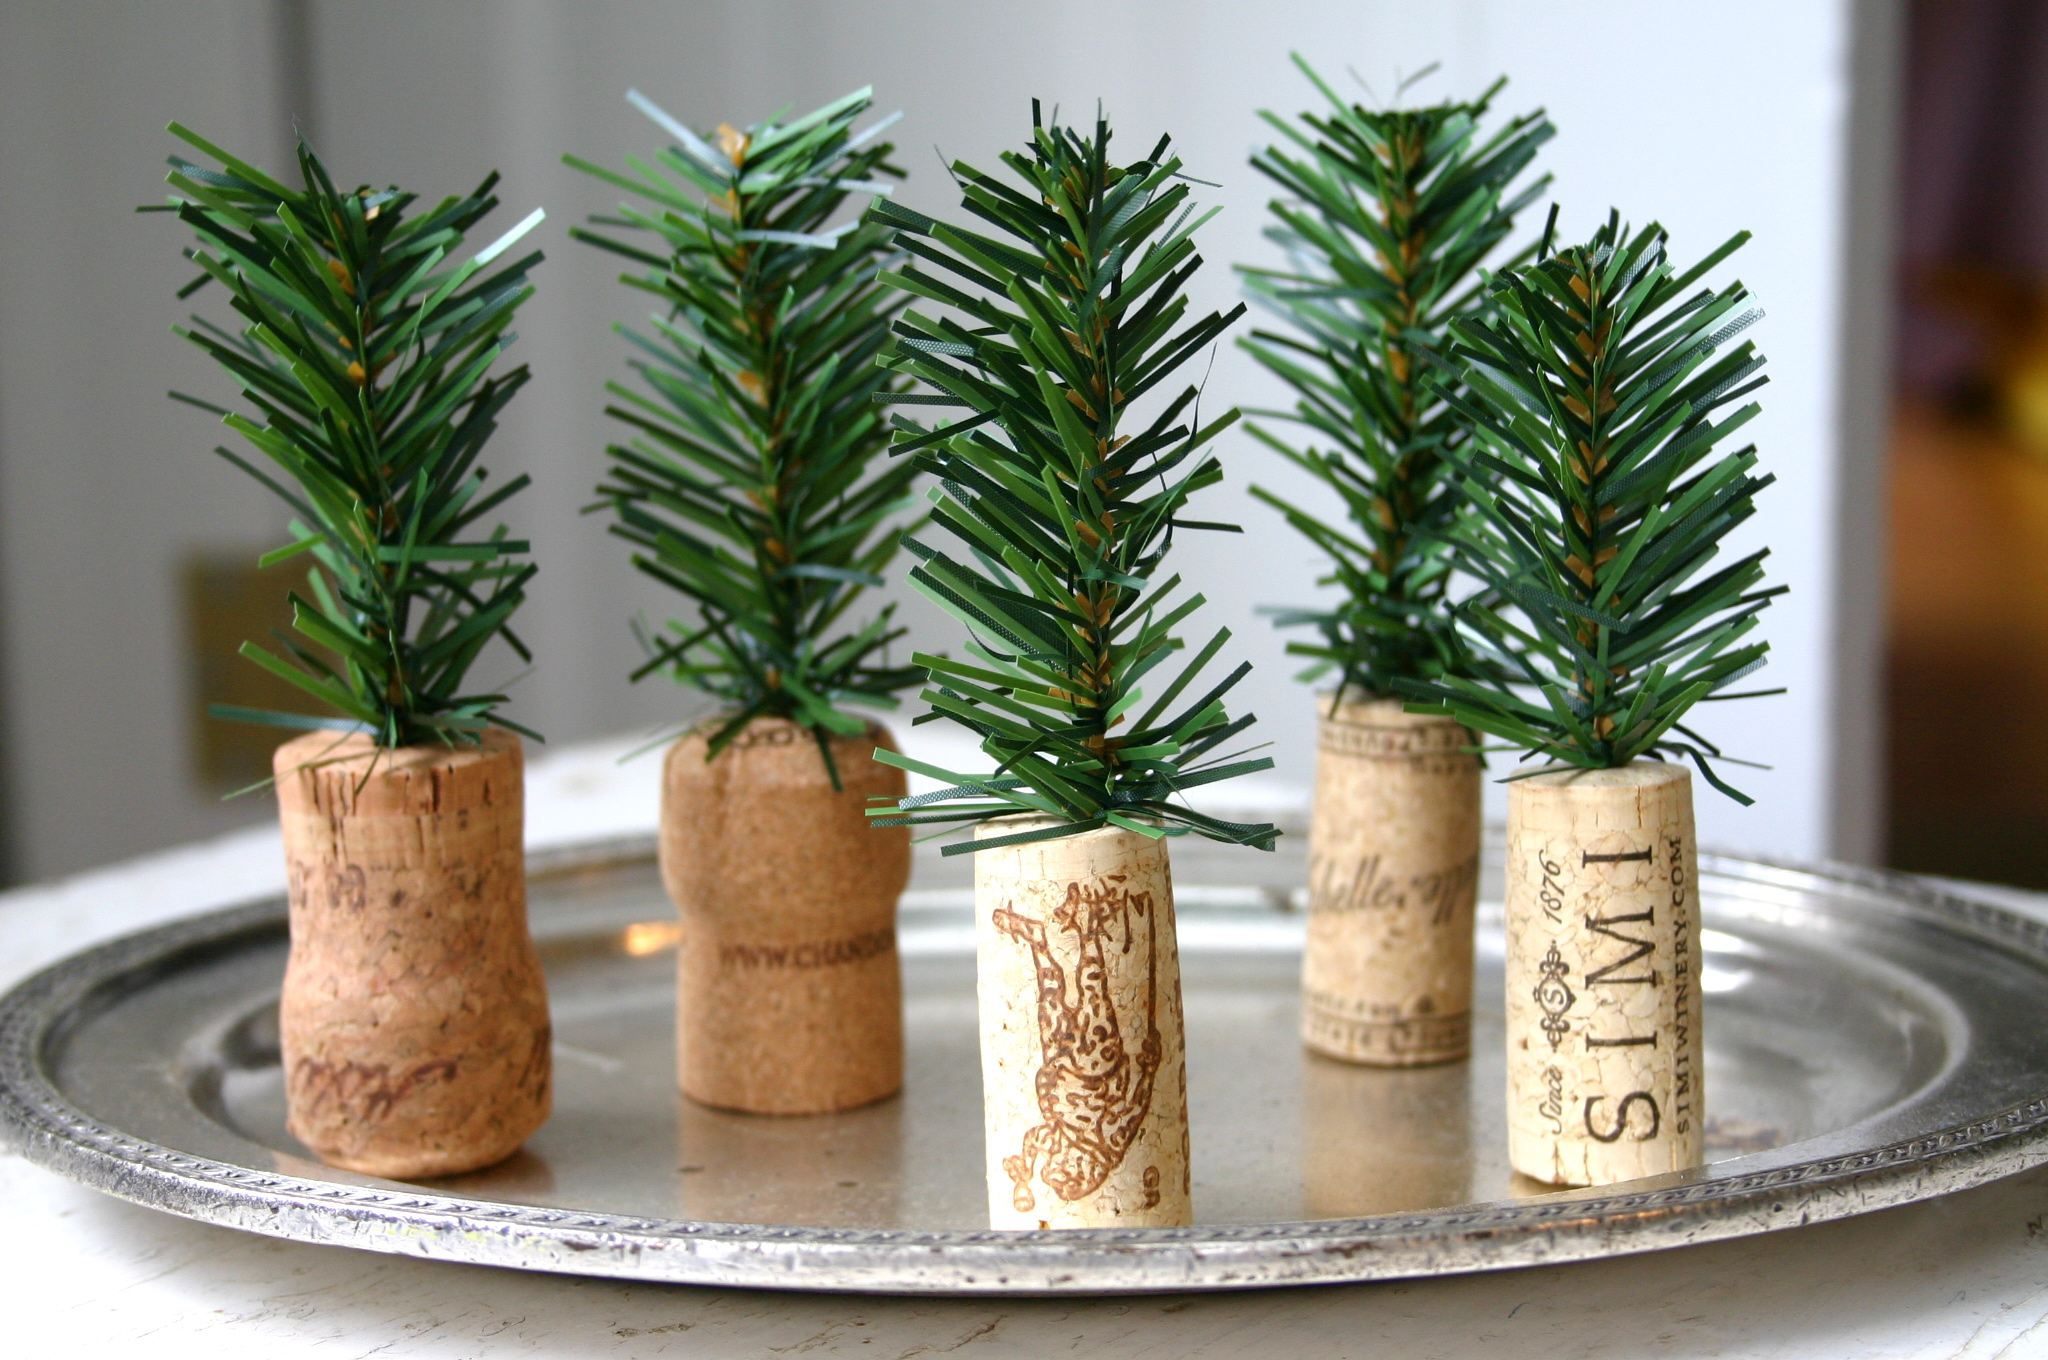 Clippings from artificial garland are stuck into wine and champagne corks to decorate a festive holiday table.